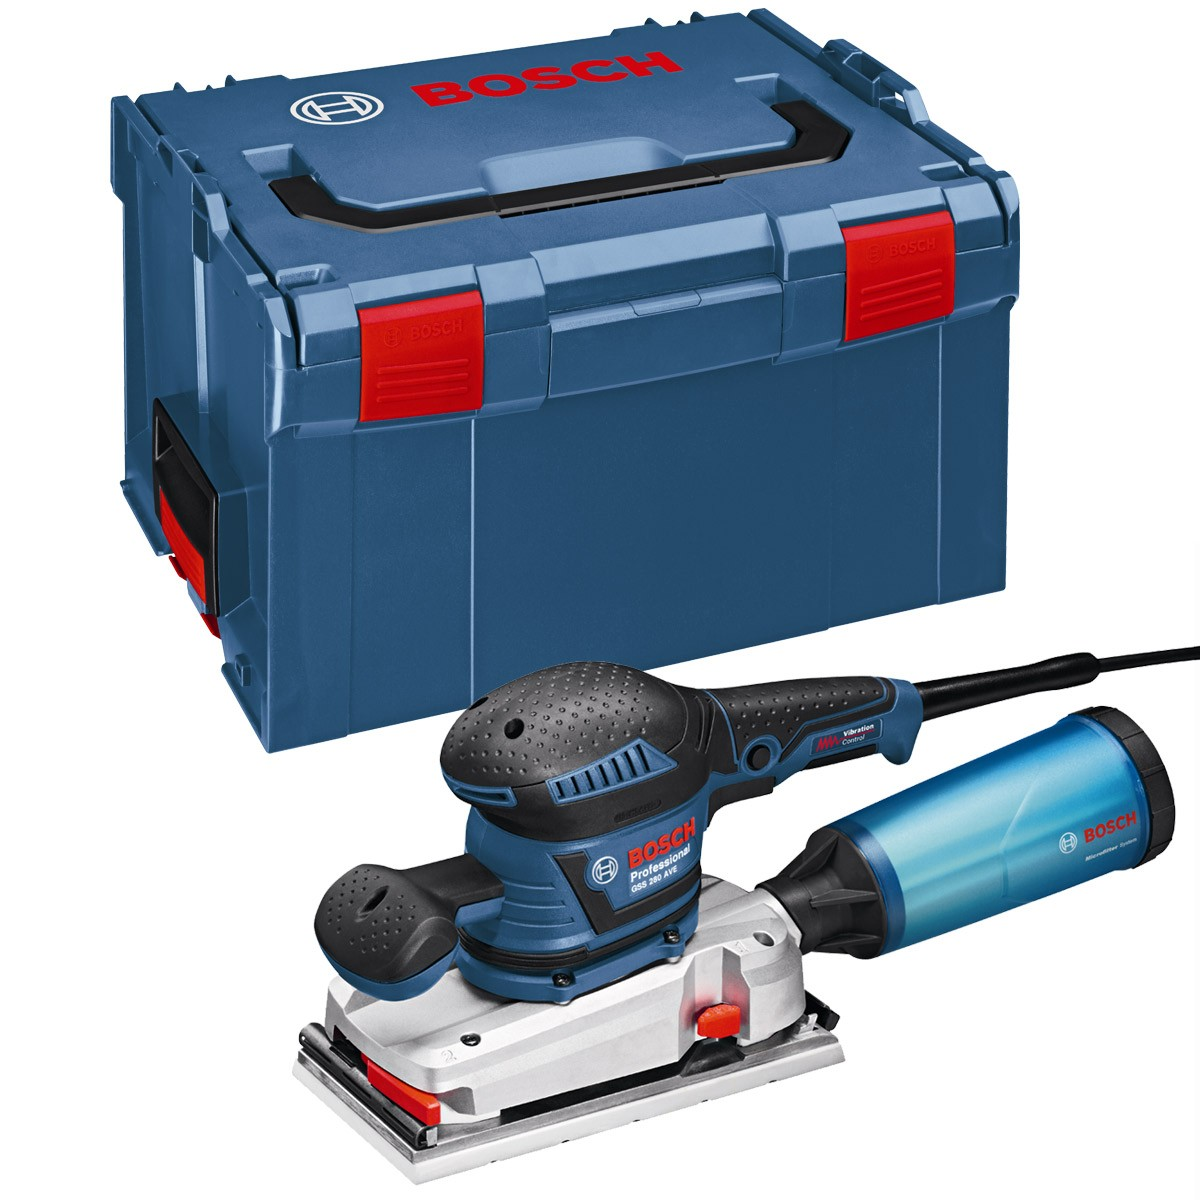 Bosch GSS 280 AVE 1/2 Sheet Sander with Vibration Control in L-Boxx